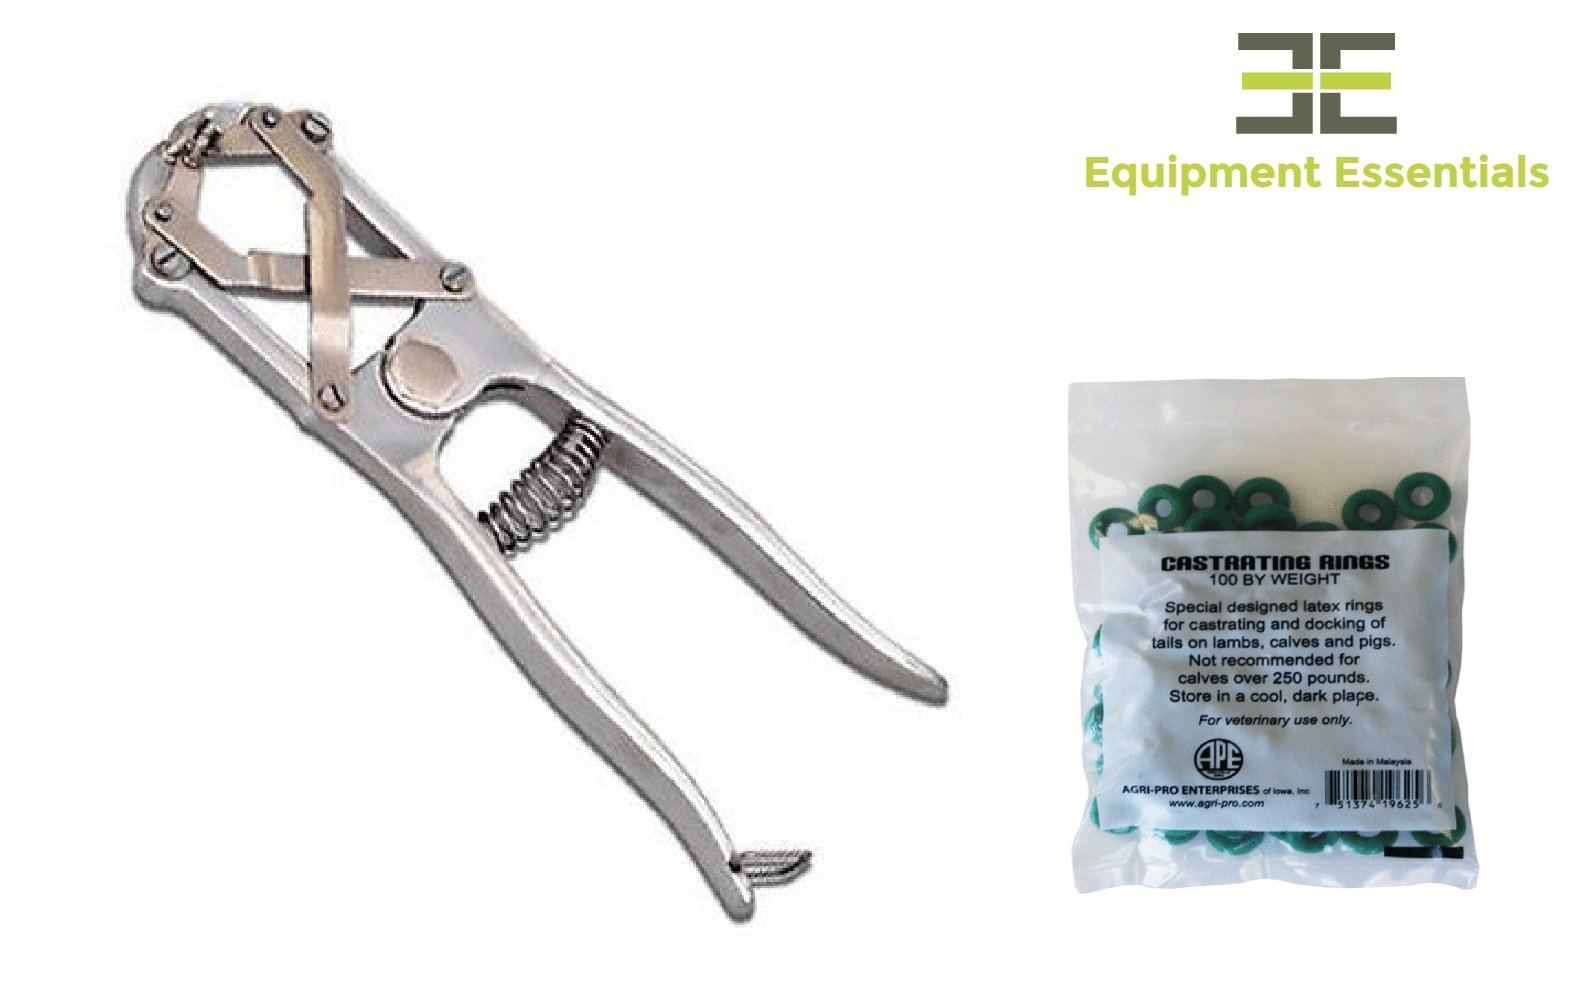 Elastrator Heavy Duty Tool Bander Pliers for Dogs Goats Lambs Calves Pigs Veterinary + 100 Bands